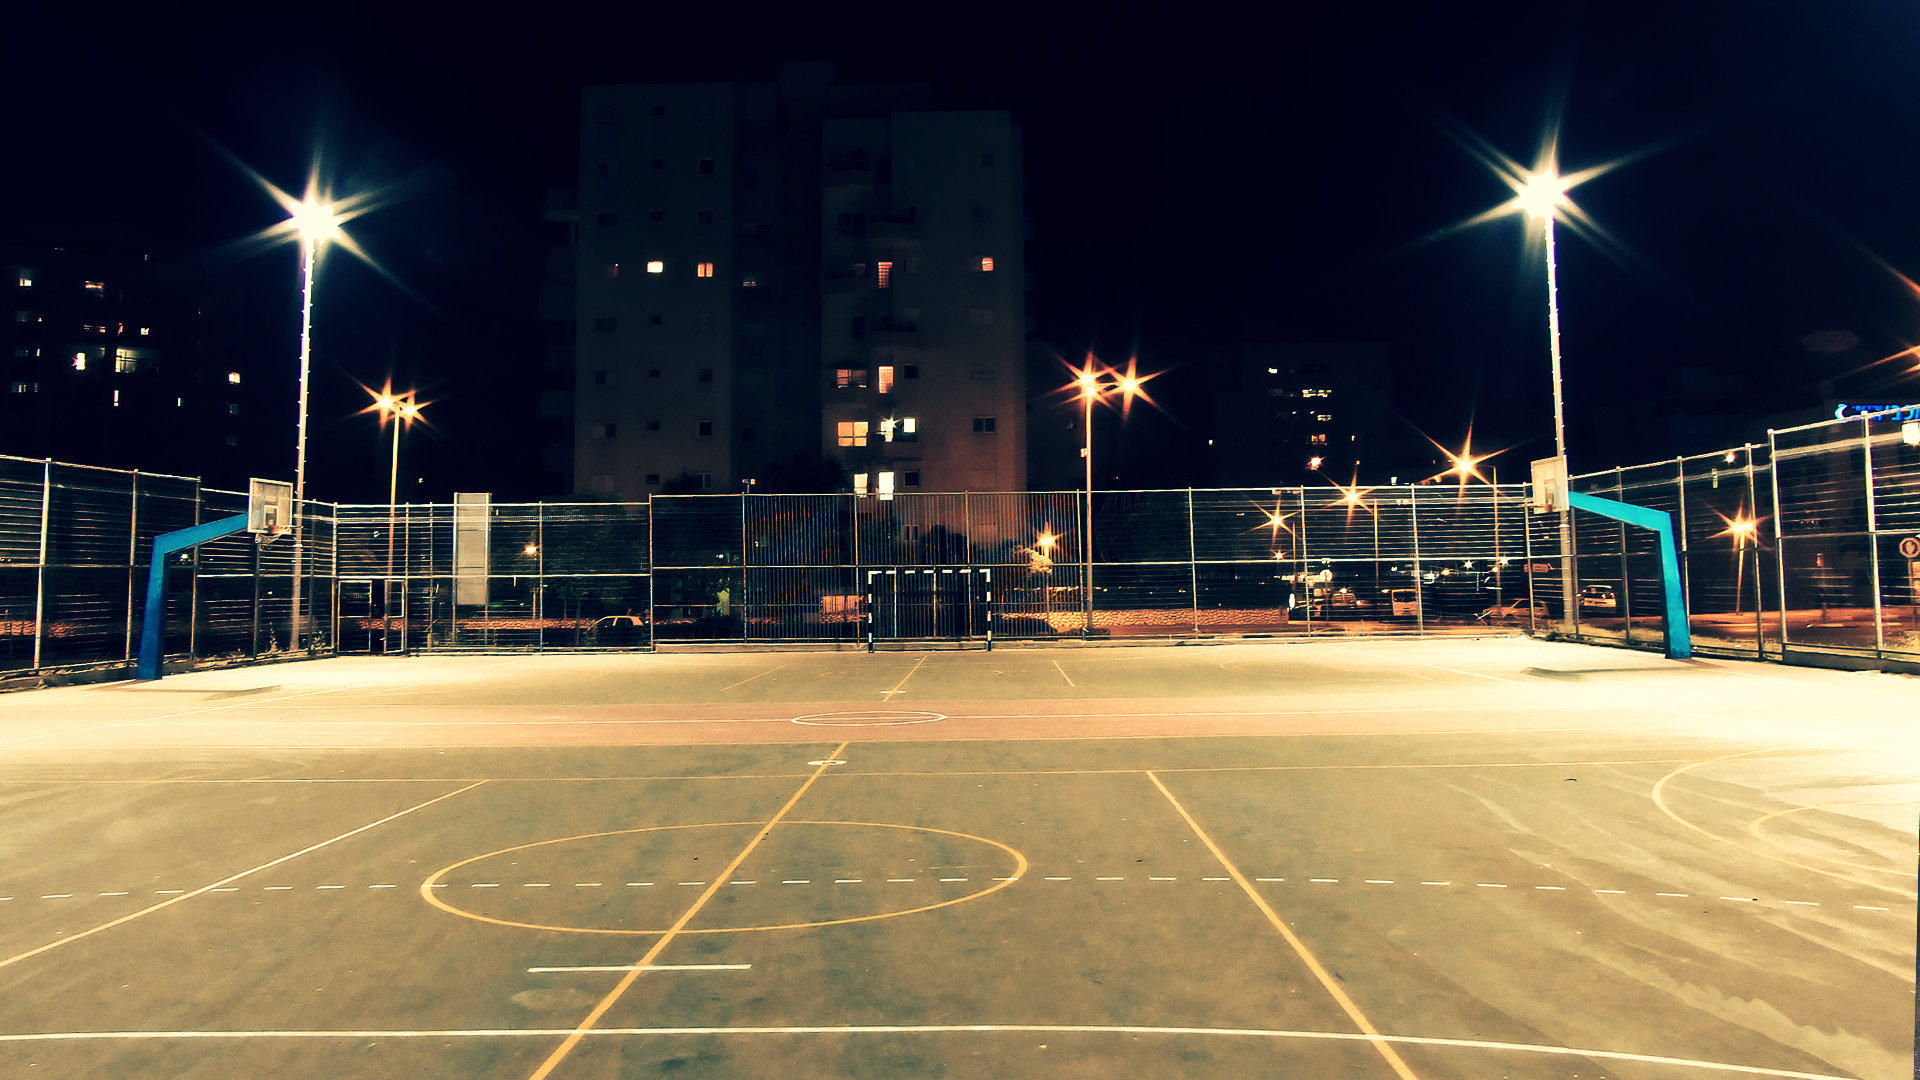 Pics photos basketball courts at night five nights at freddys view